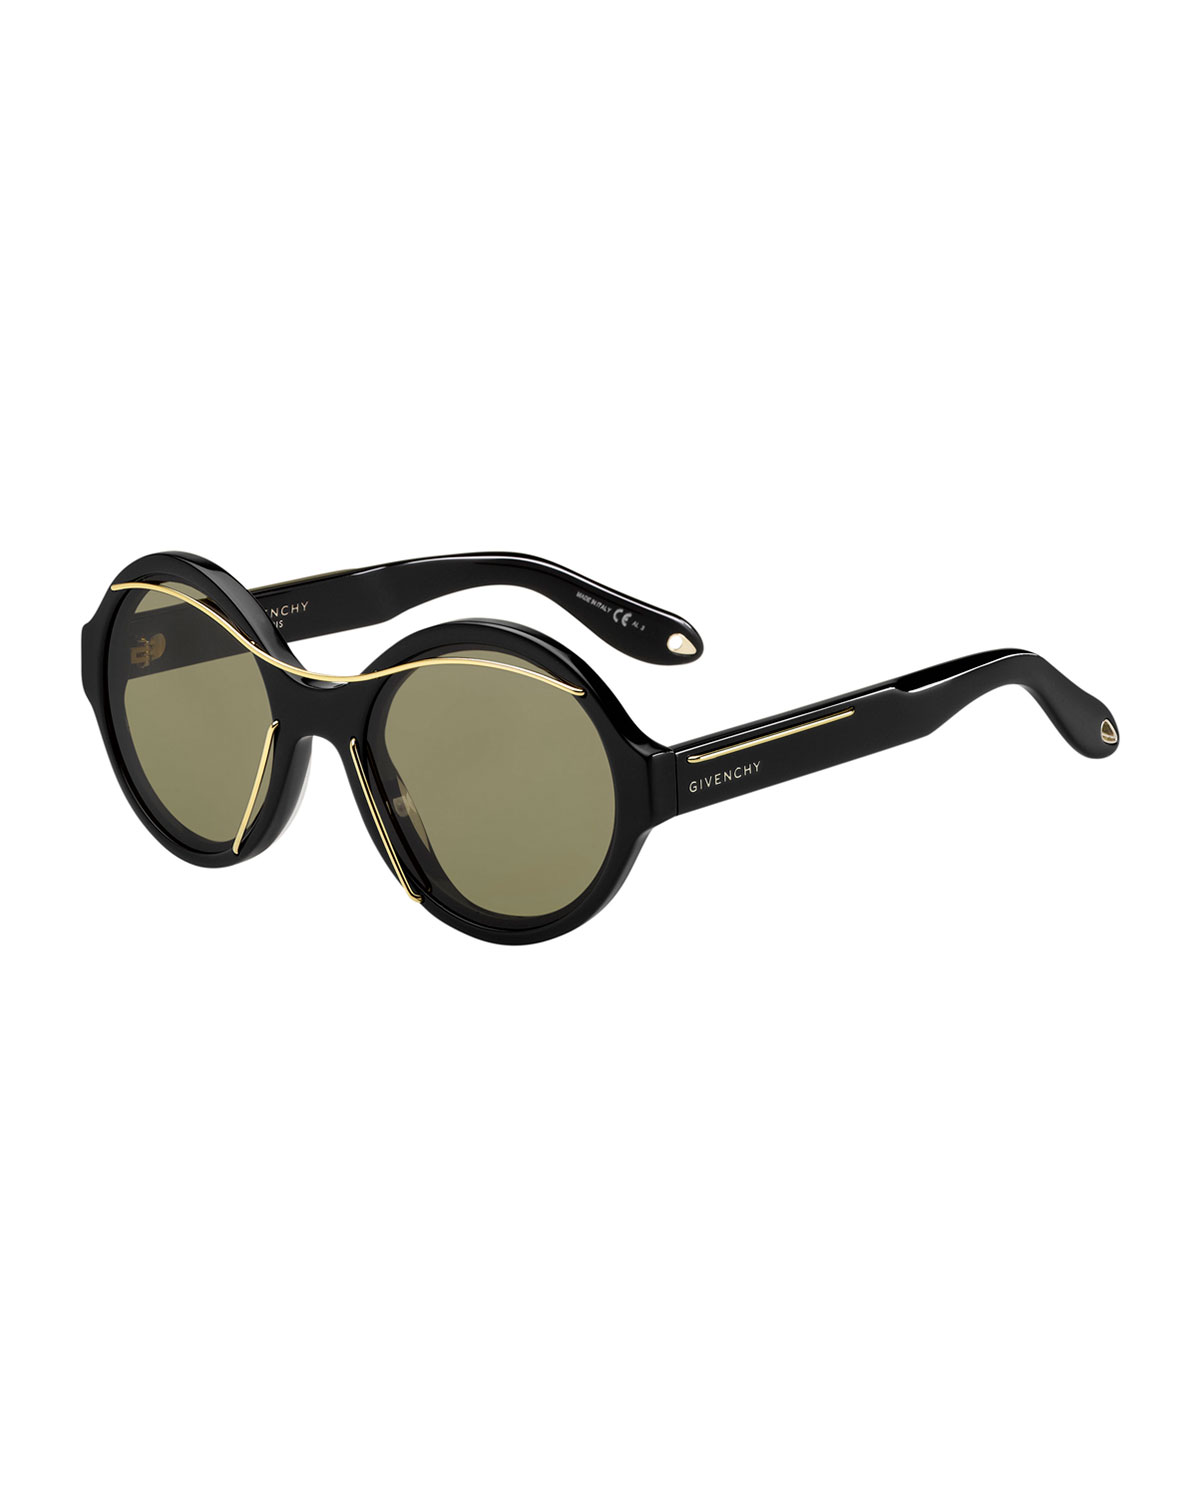 Givenchy Round Acetate Sunglasses w/Metal Wires | Neiman Marcus